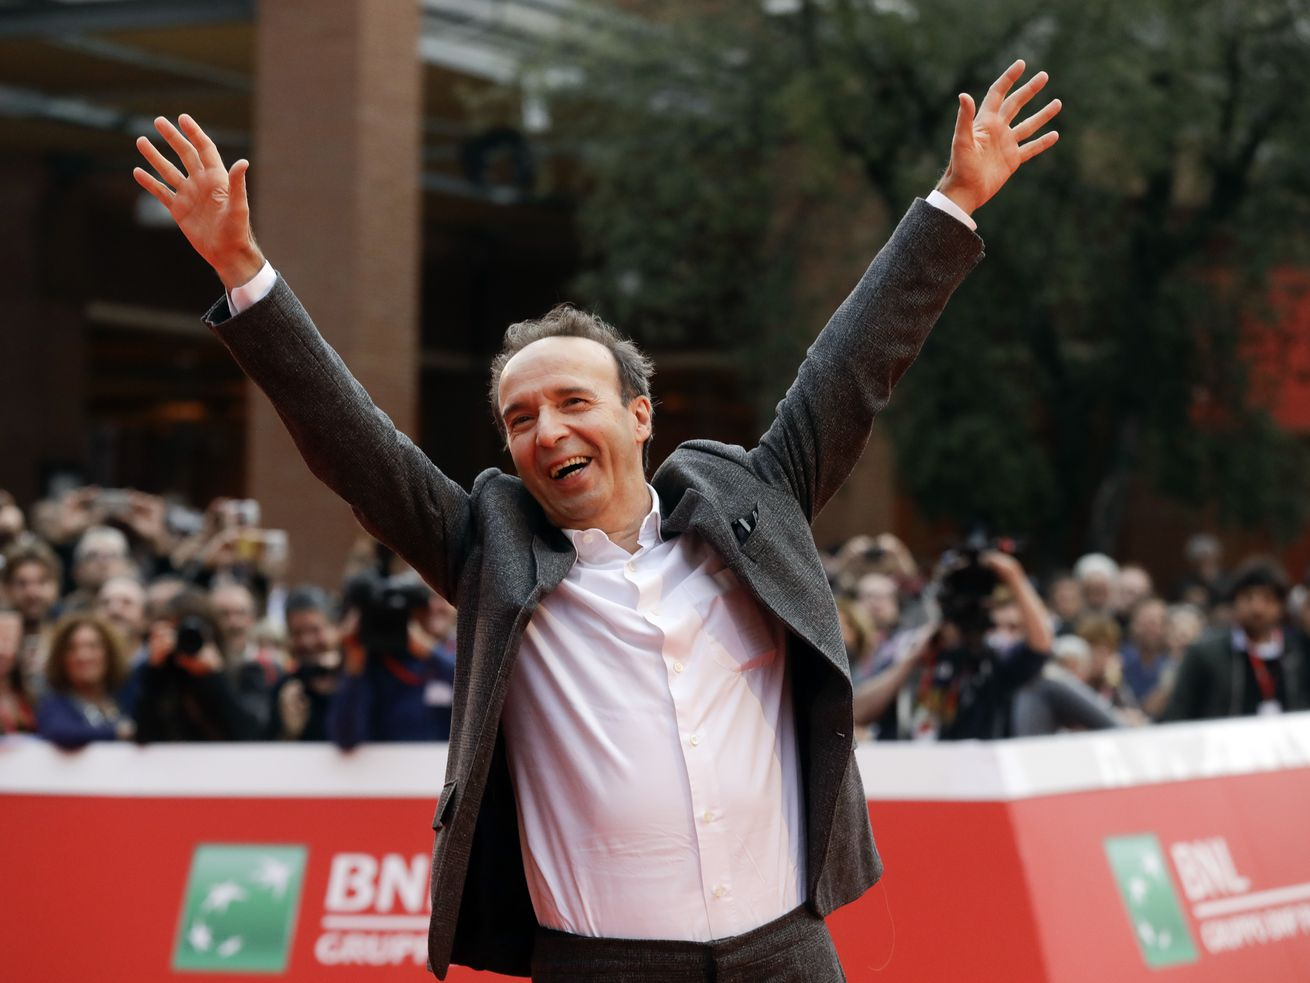 In this 2016 file photo, actor Roberto Benigni poses for photographers as he arrives on the red carpet at the Rome Film Festival.